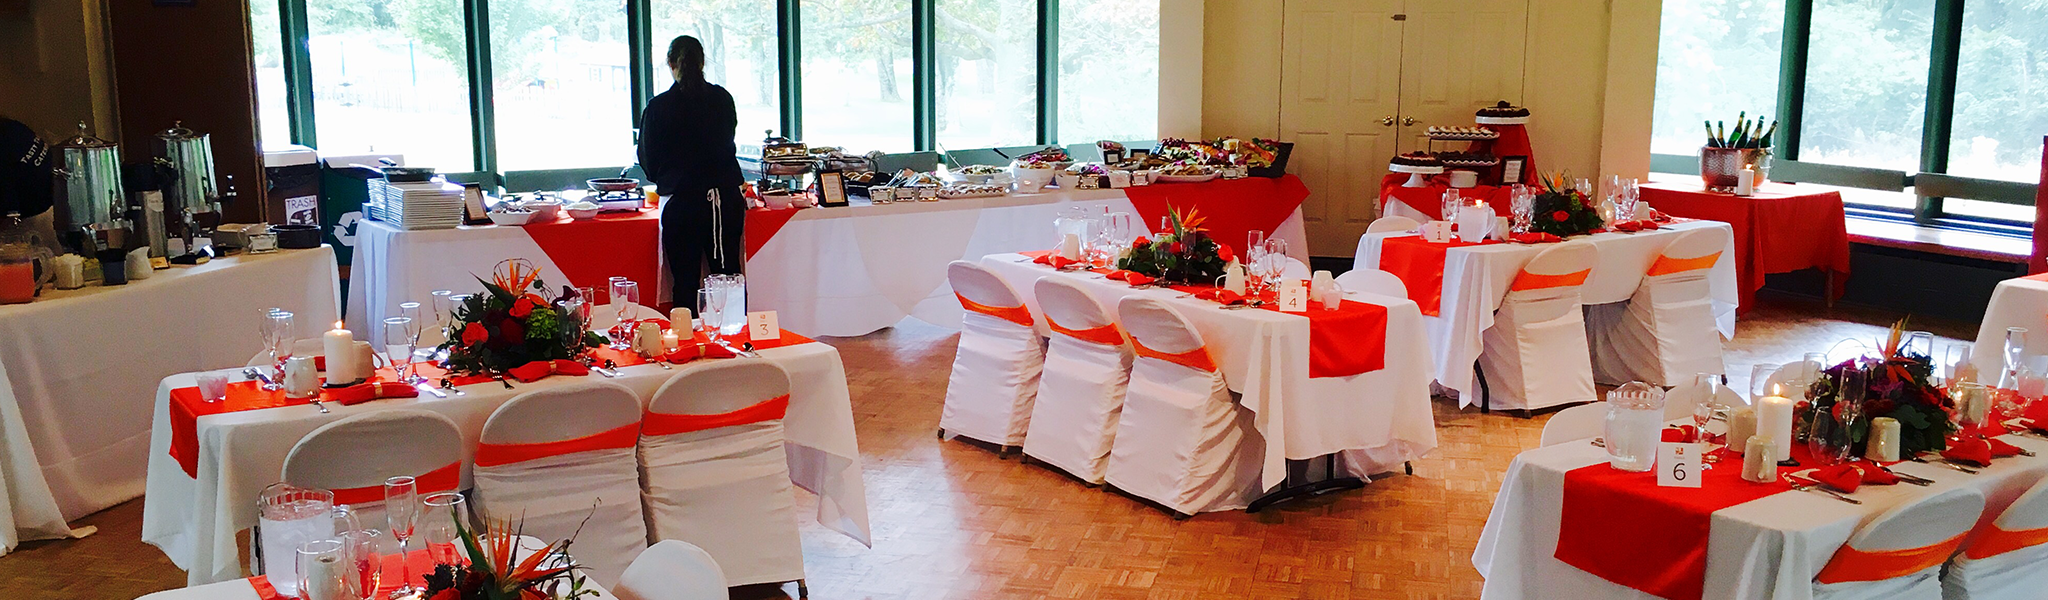 Tasty Table Catering: Full-service catering at an affordable price!